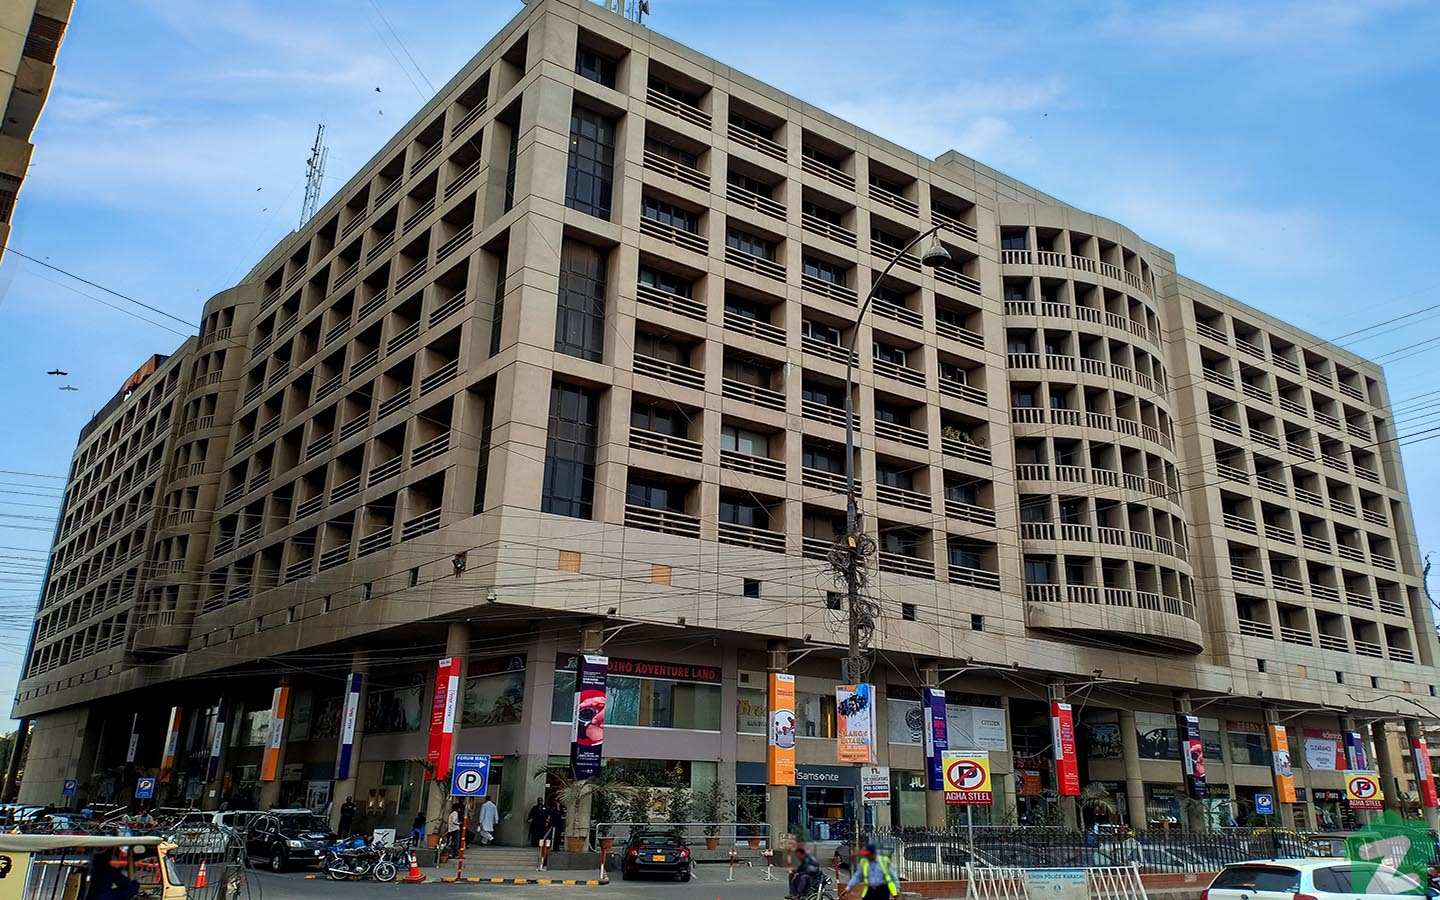 Forum Mall is one of the oldest and most popular shopping malls located near DHA Phase IV Karachi